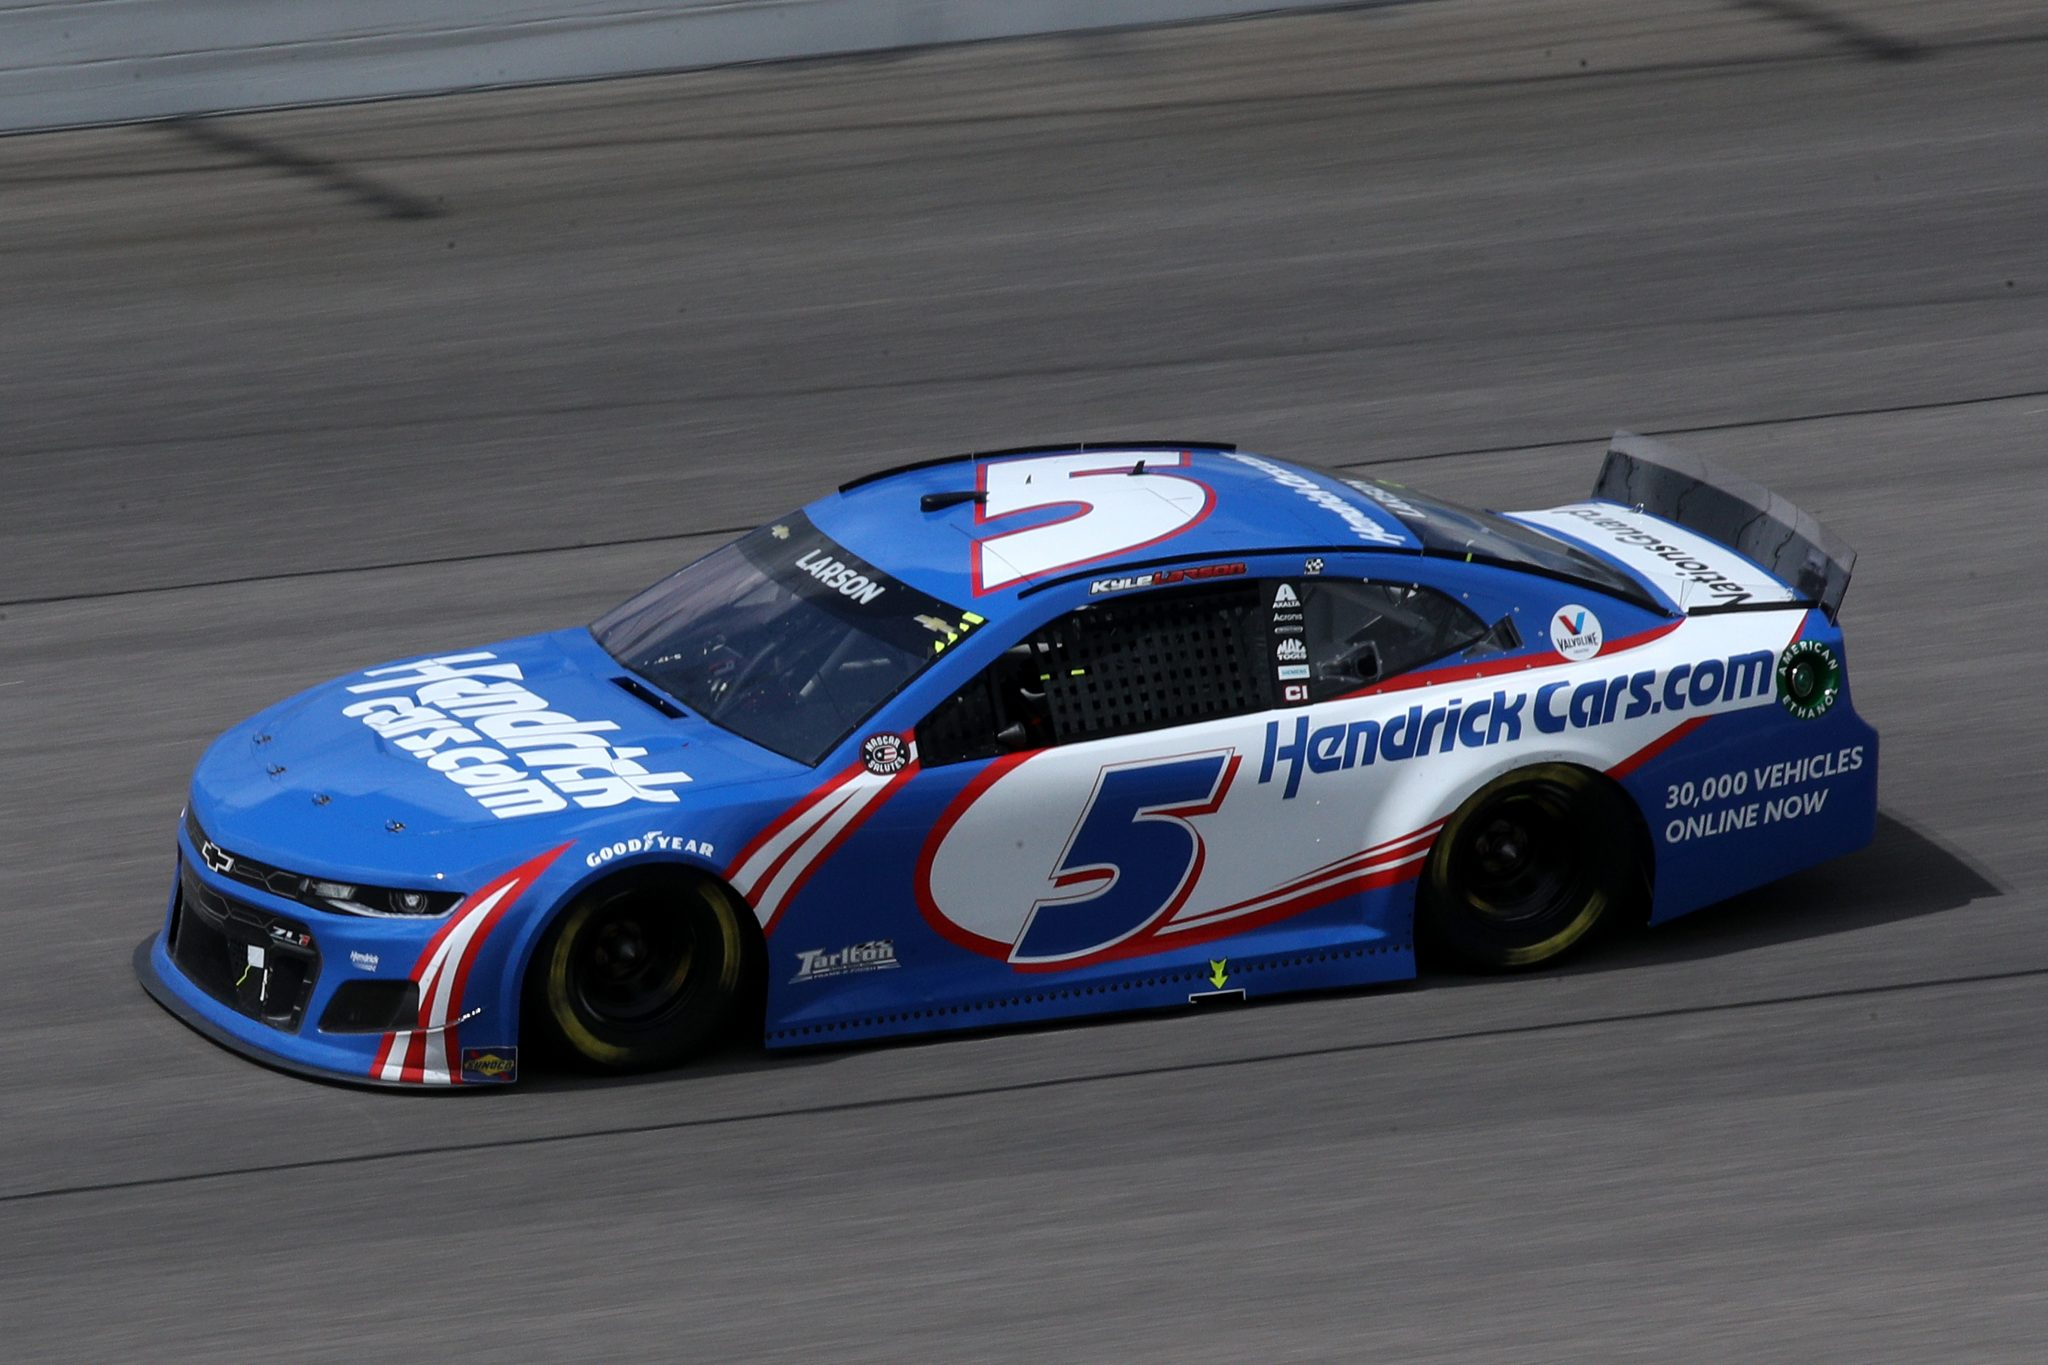 KANSAS CITY, KANSAS - MAY 02: Kyle Larson, driver of the #5 HendrickCars.com Chevrolet, drives during the NASCAR Cup Series Buschy McBusch Race 400 at Kansas Speedway on May 02, 2021 in Kansas City, Kansas. (Photo by Sean Gardner/Getty Images) | Getty Images